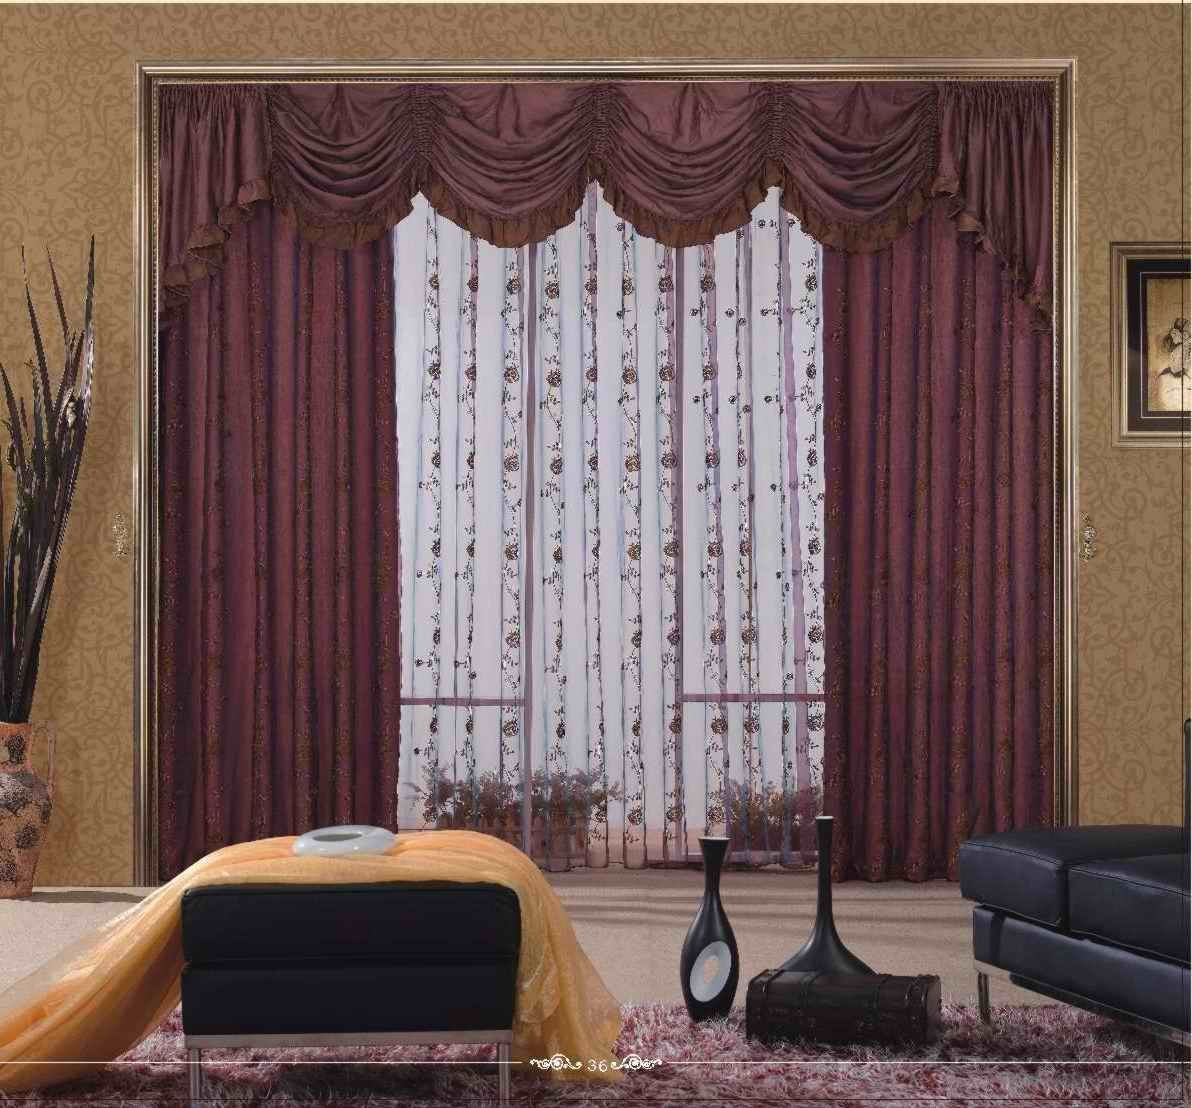 Vintage Living Room Curtains Designing Ideas With Triple Layers Such As  Ruffles Thick Maroon Curtain And White Decorative Curta.